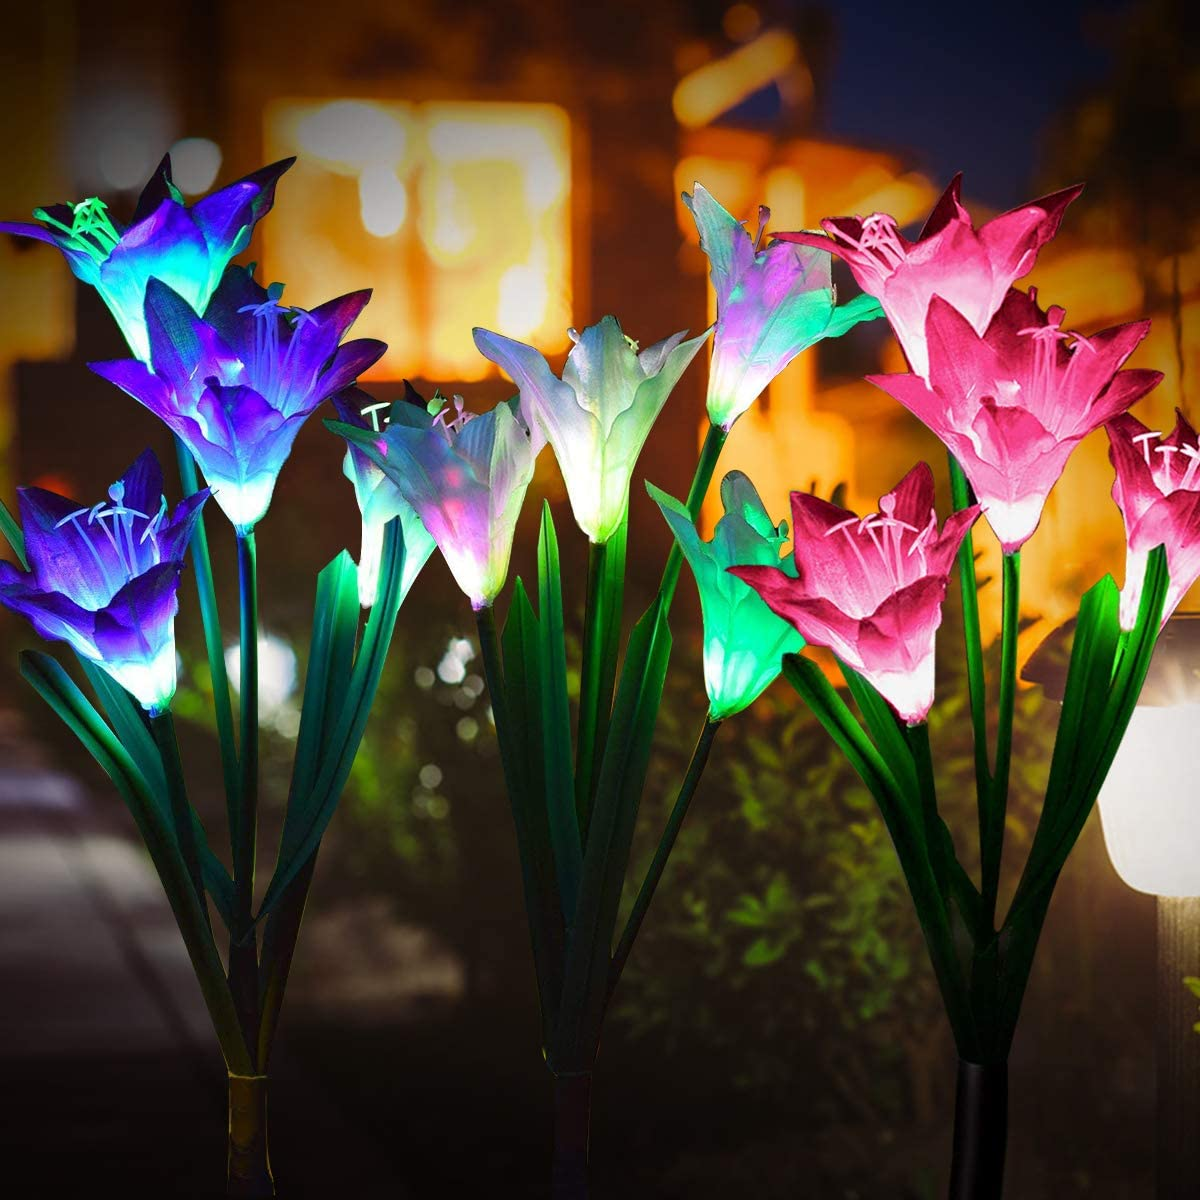 Pussan Solar Lights Outdoor Fairy Garden Lights Solar Powered Lamps 3 Pack with 7 Lily Flower Multi Color Changing LED, Outdoor Ornaments Patio Yard Lawn Garden Decoration Light